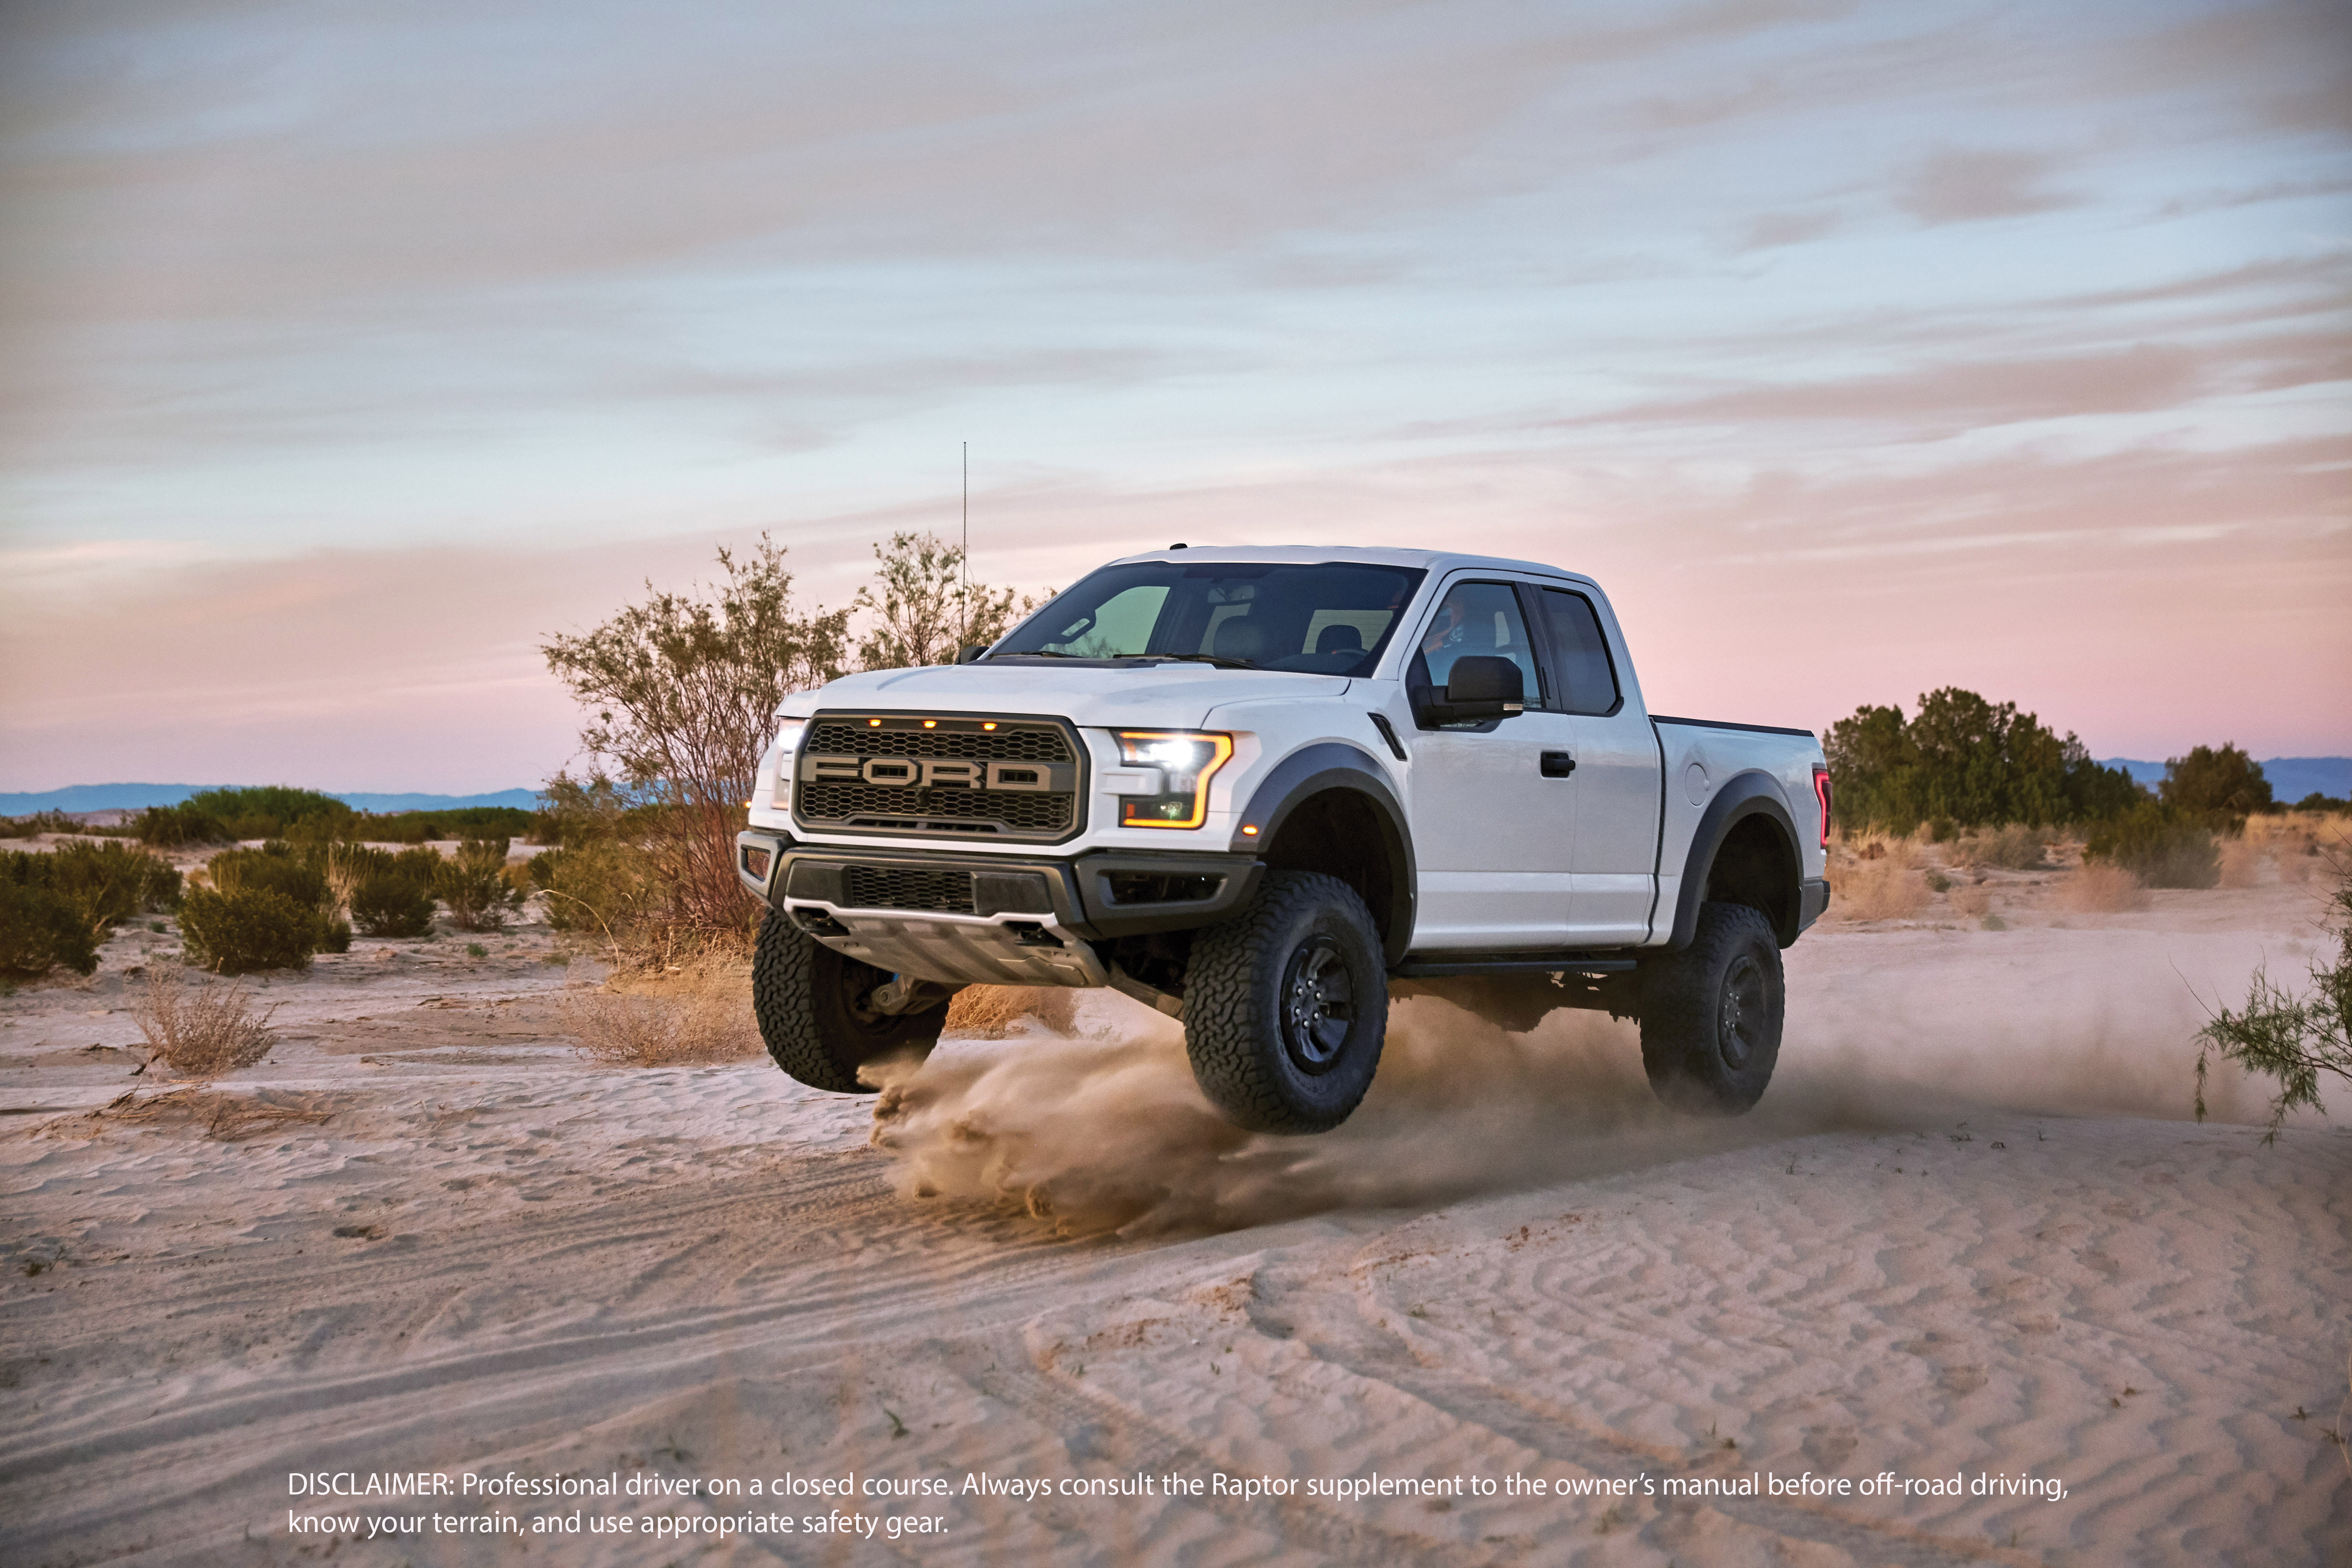 You Can Press The Baja On In 2017 Ford Raptor To Make It Eat Sand Verge